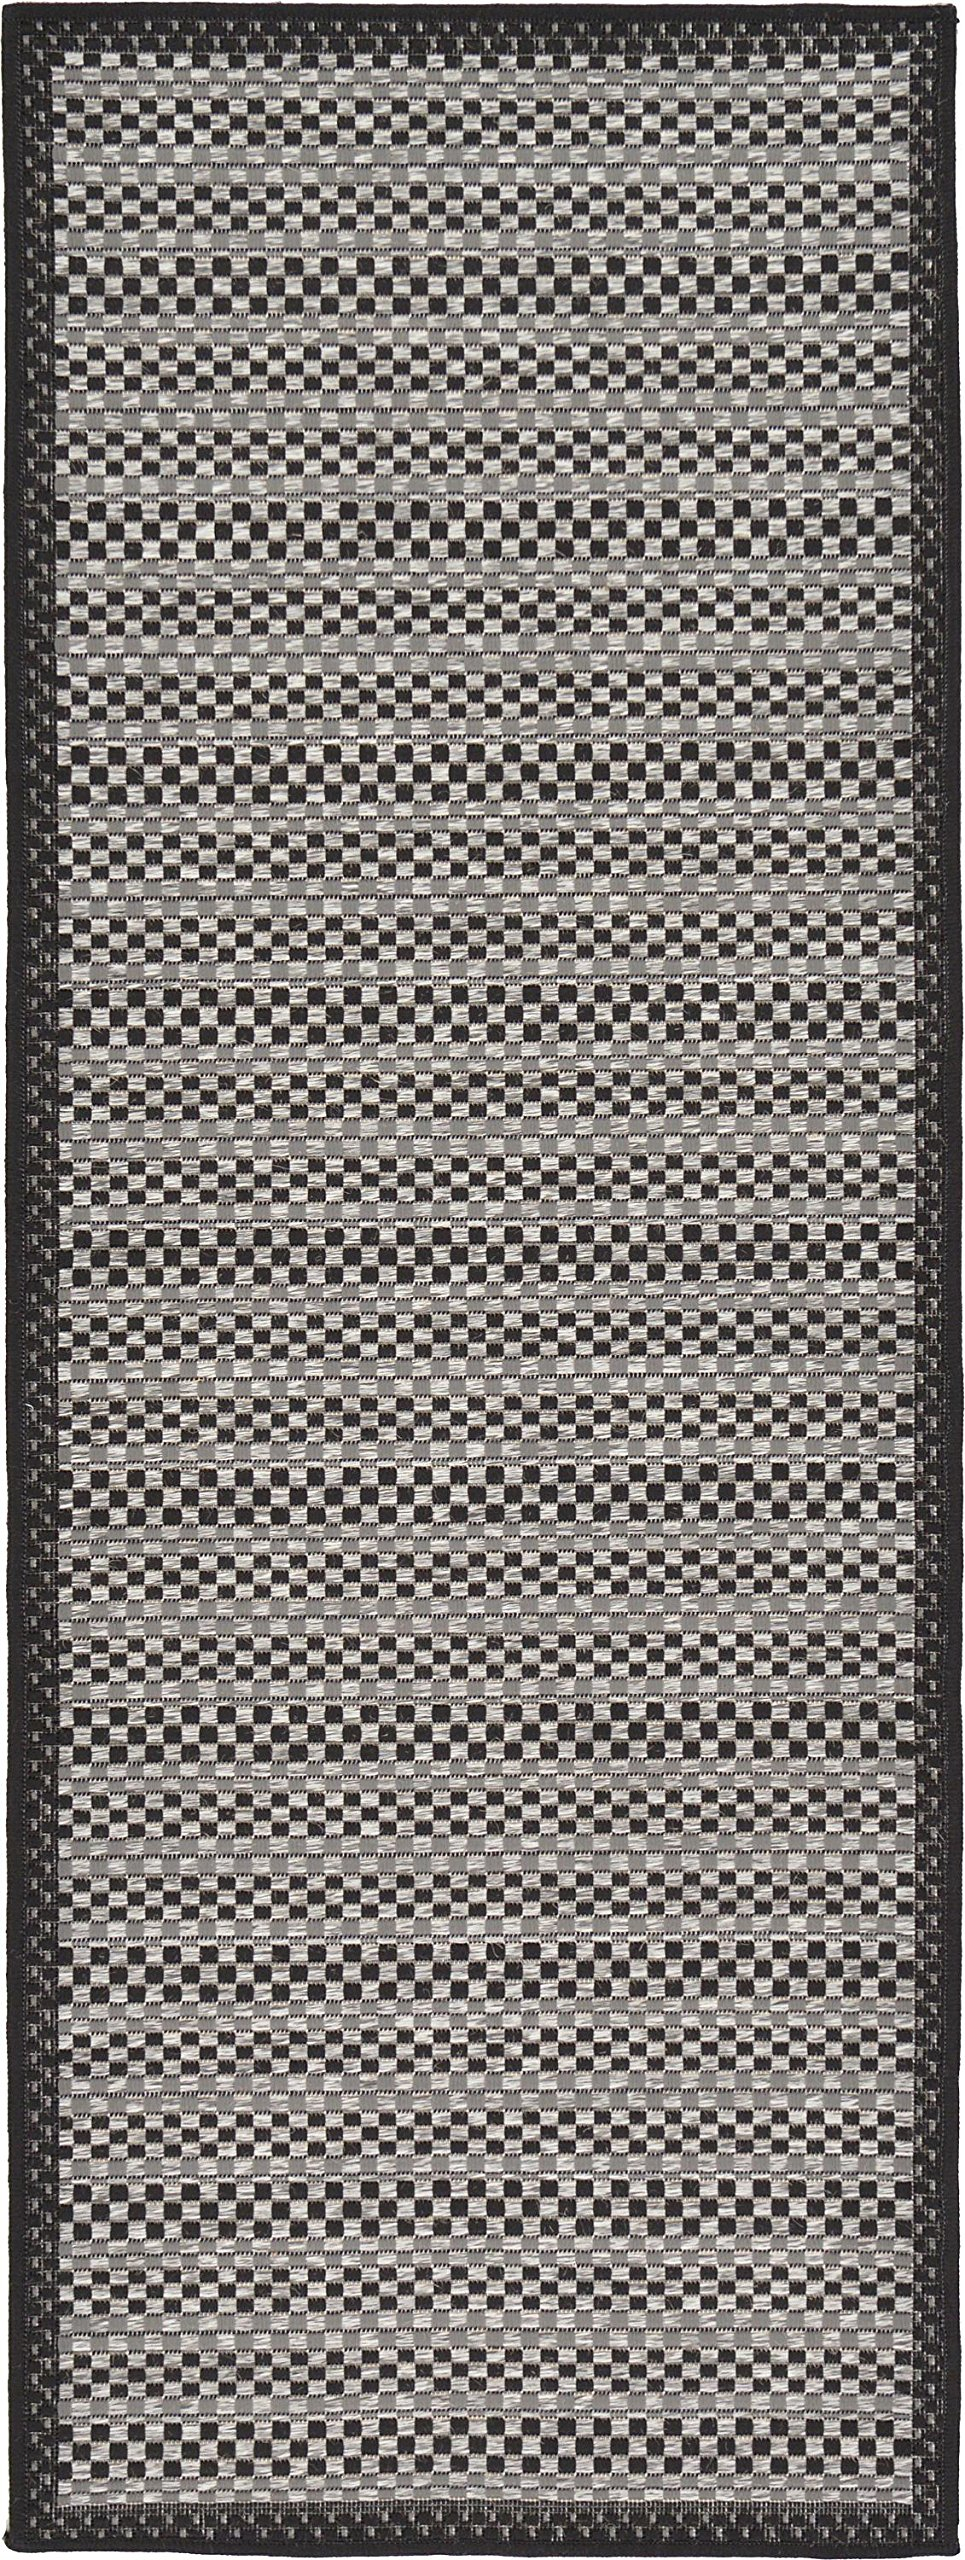 Unique Loom Outdoor Collection Striped Casual Border Indoor and Outdoor Transitional Gray Runner Rug (2' x 6')